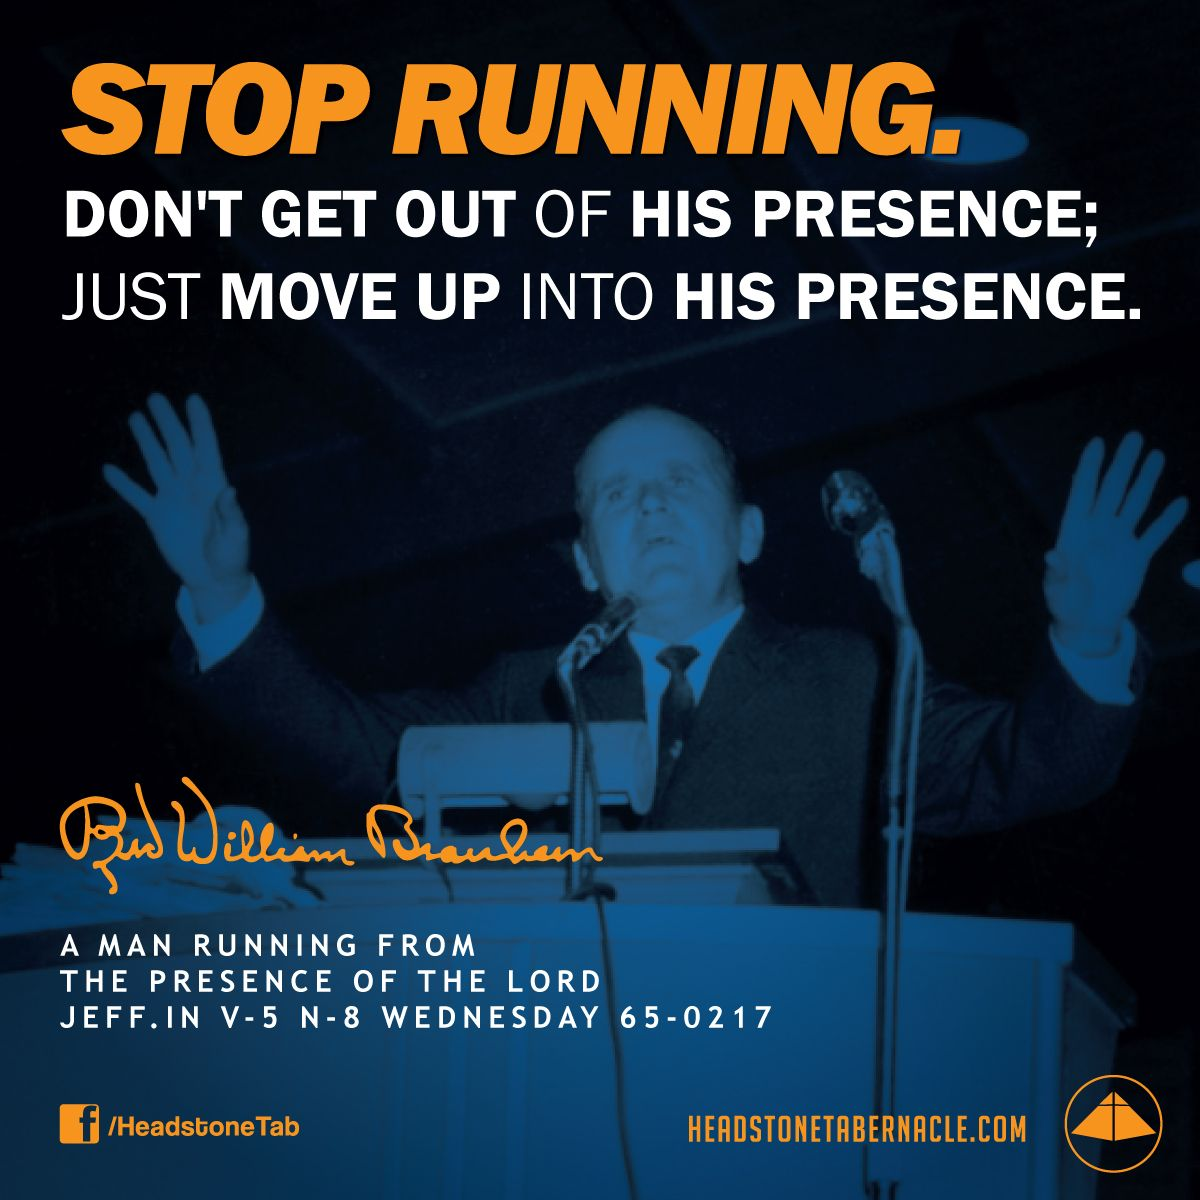 Voice Of God Recordings Quote Of The Day: Stop Running. Don't Get Out Of His Presence; Just Move Up